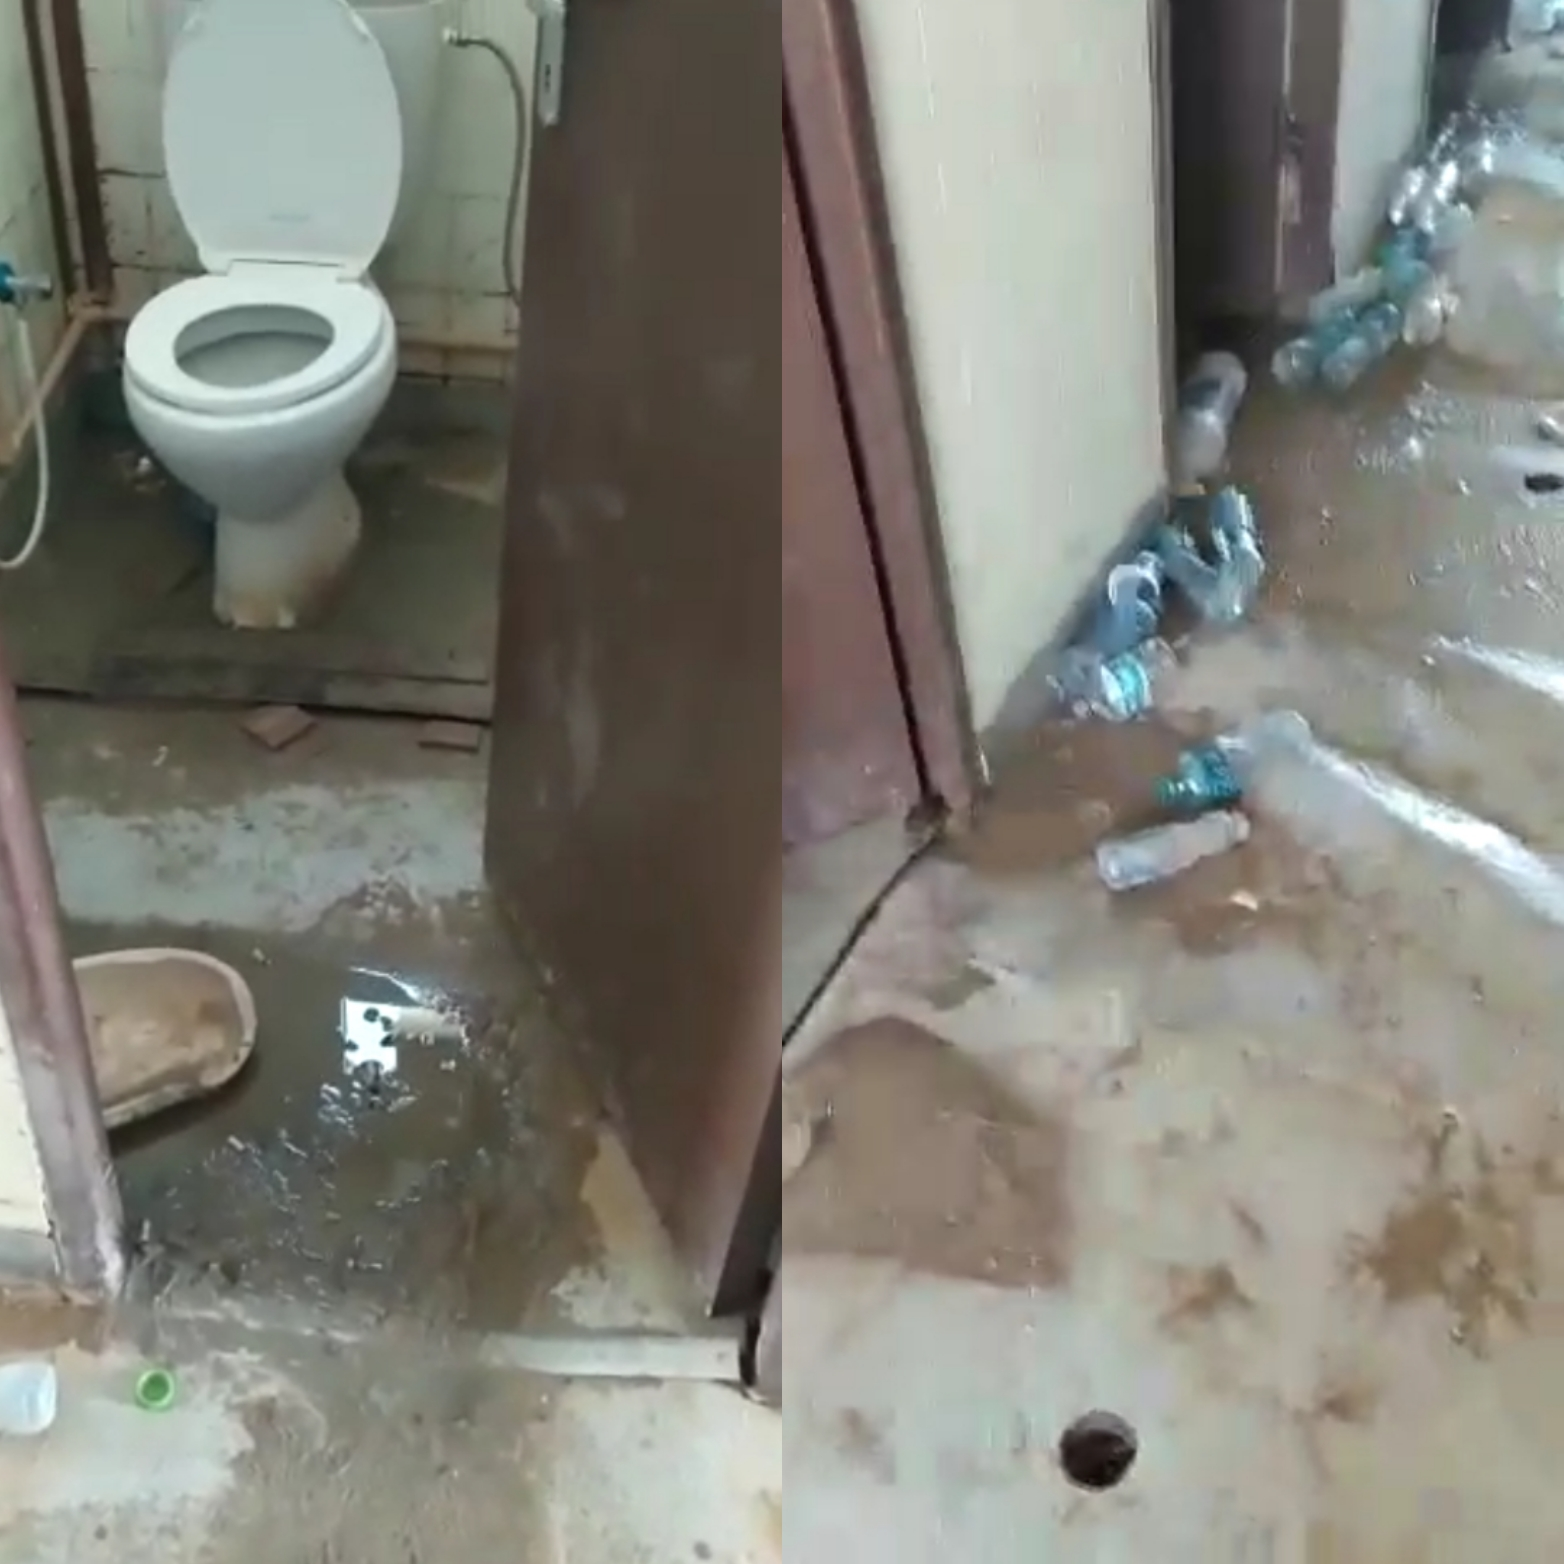 Overflowing sewage and poor wash facilities have prevented workers from cleaning themselves (MEE)